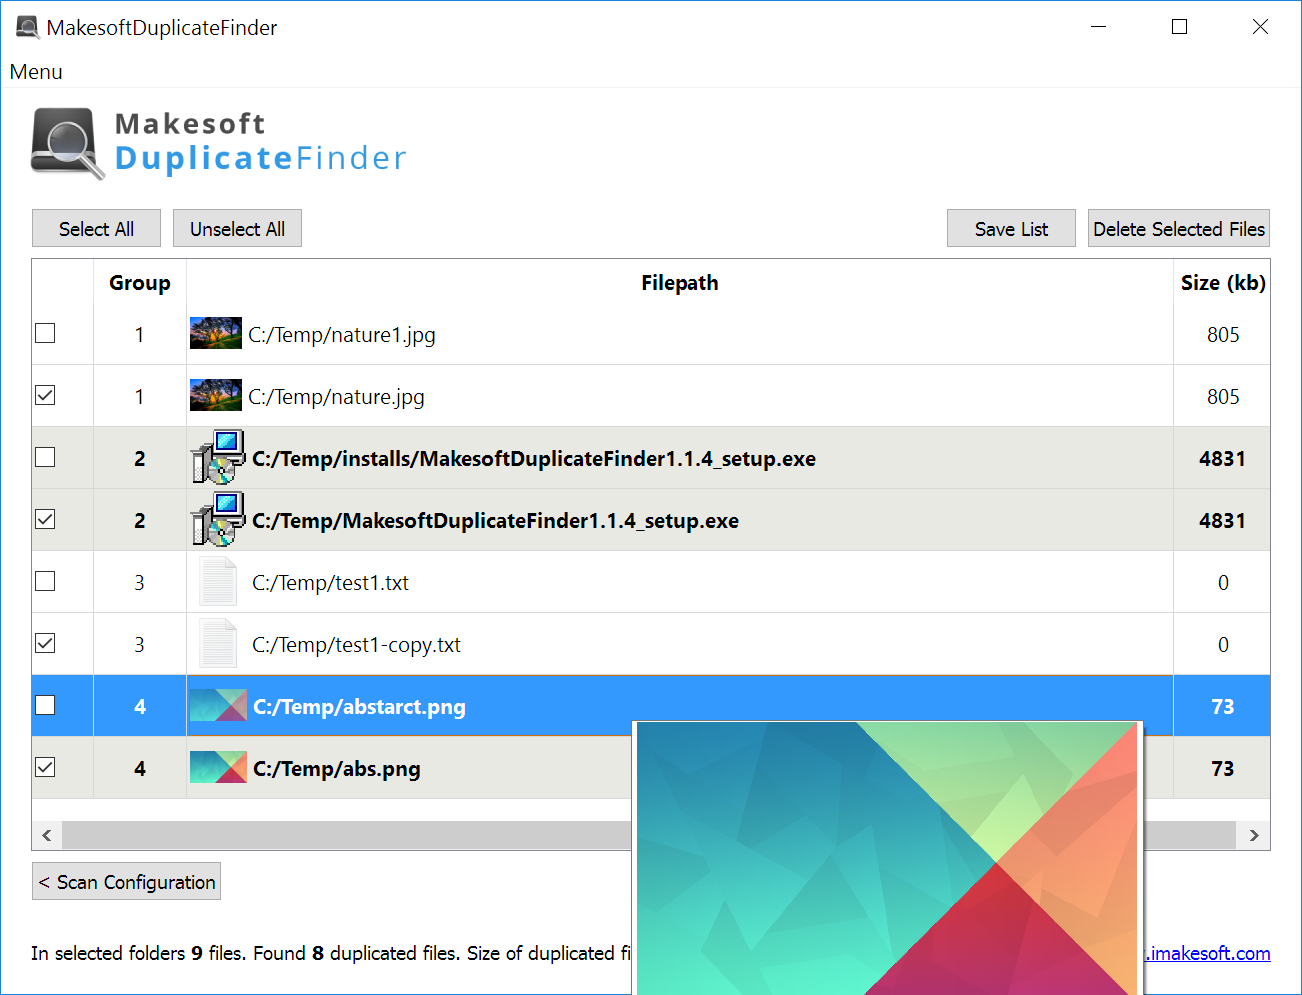 Makesoft DuplicateFinder